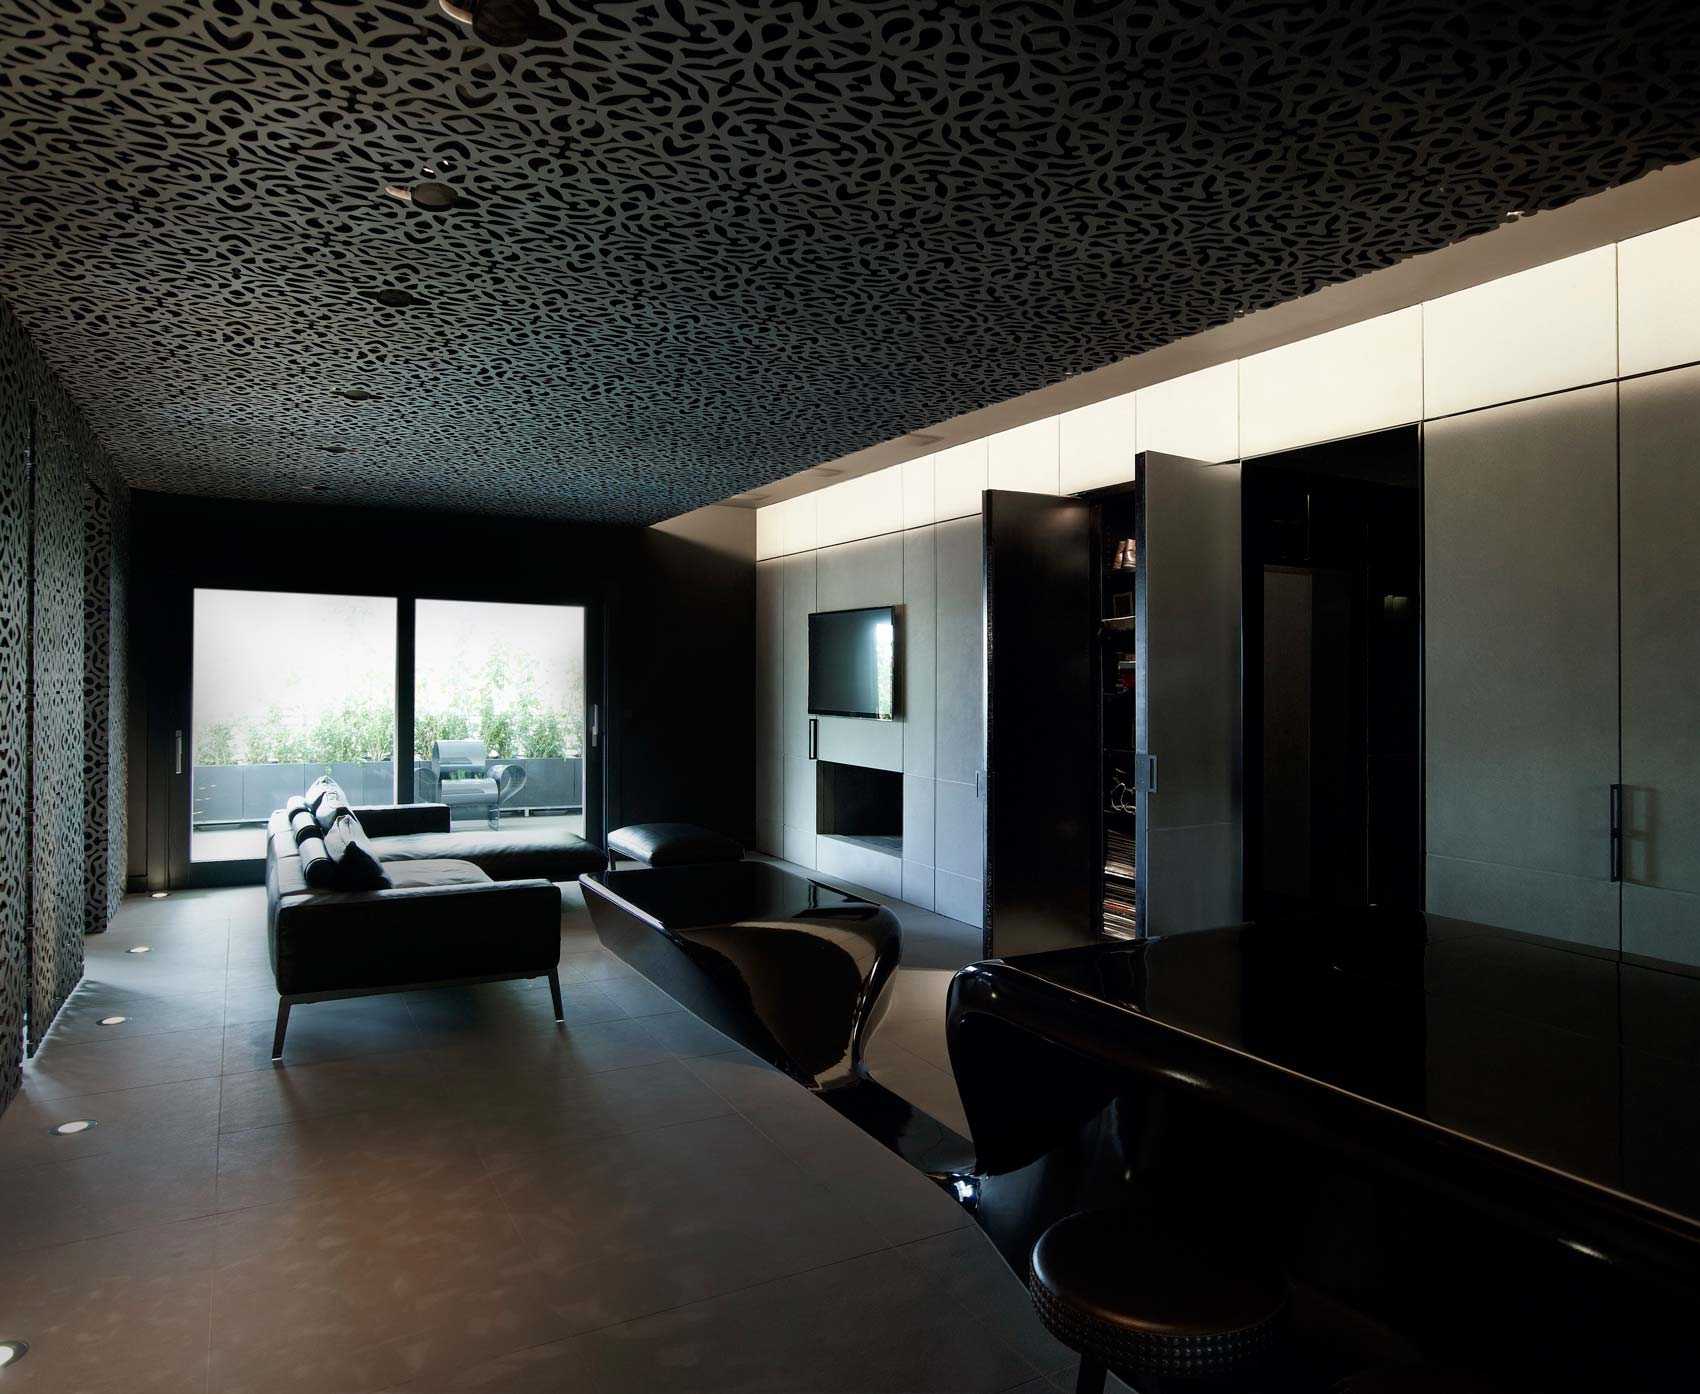 Hom M E By Omniview And K Studio The Greek Foundation